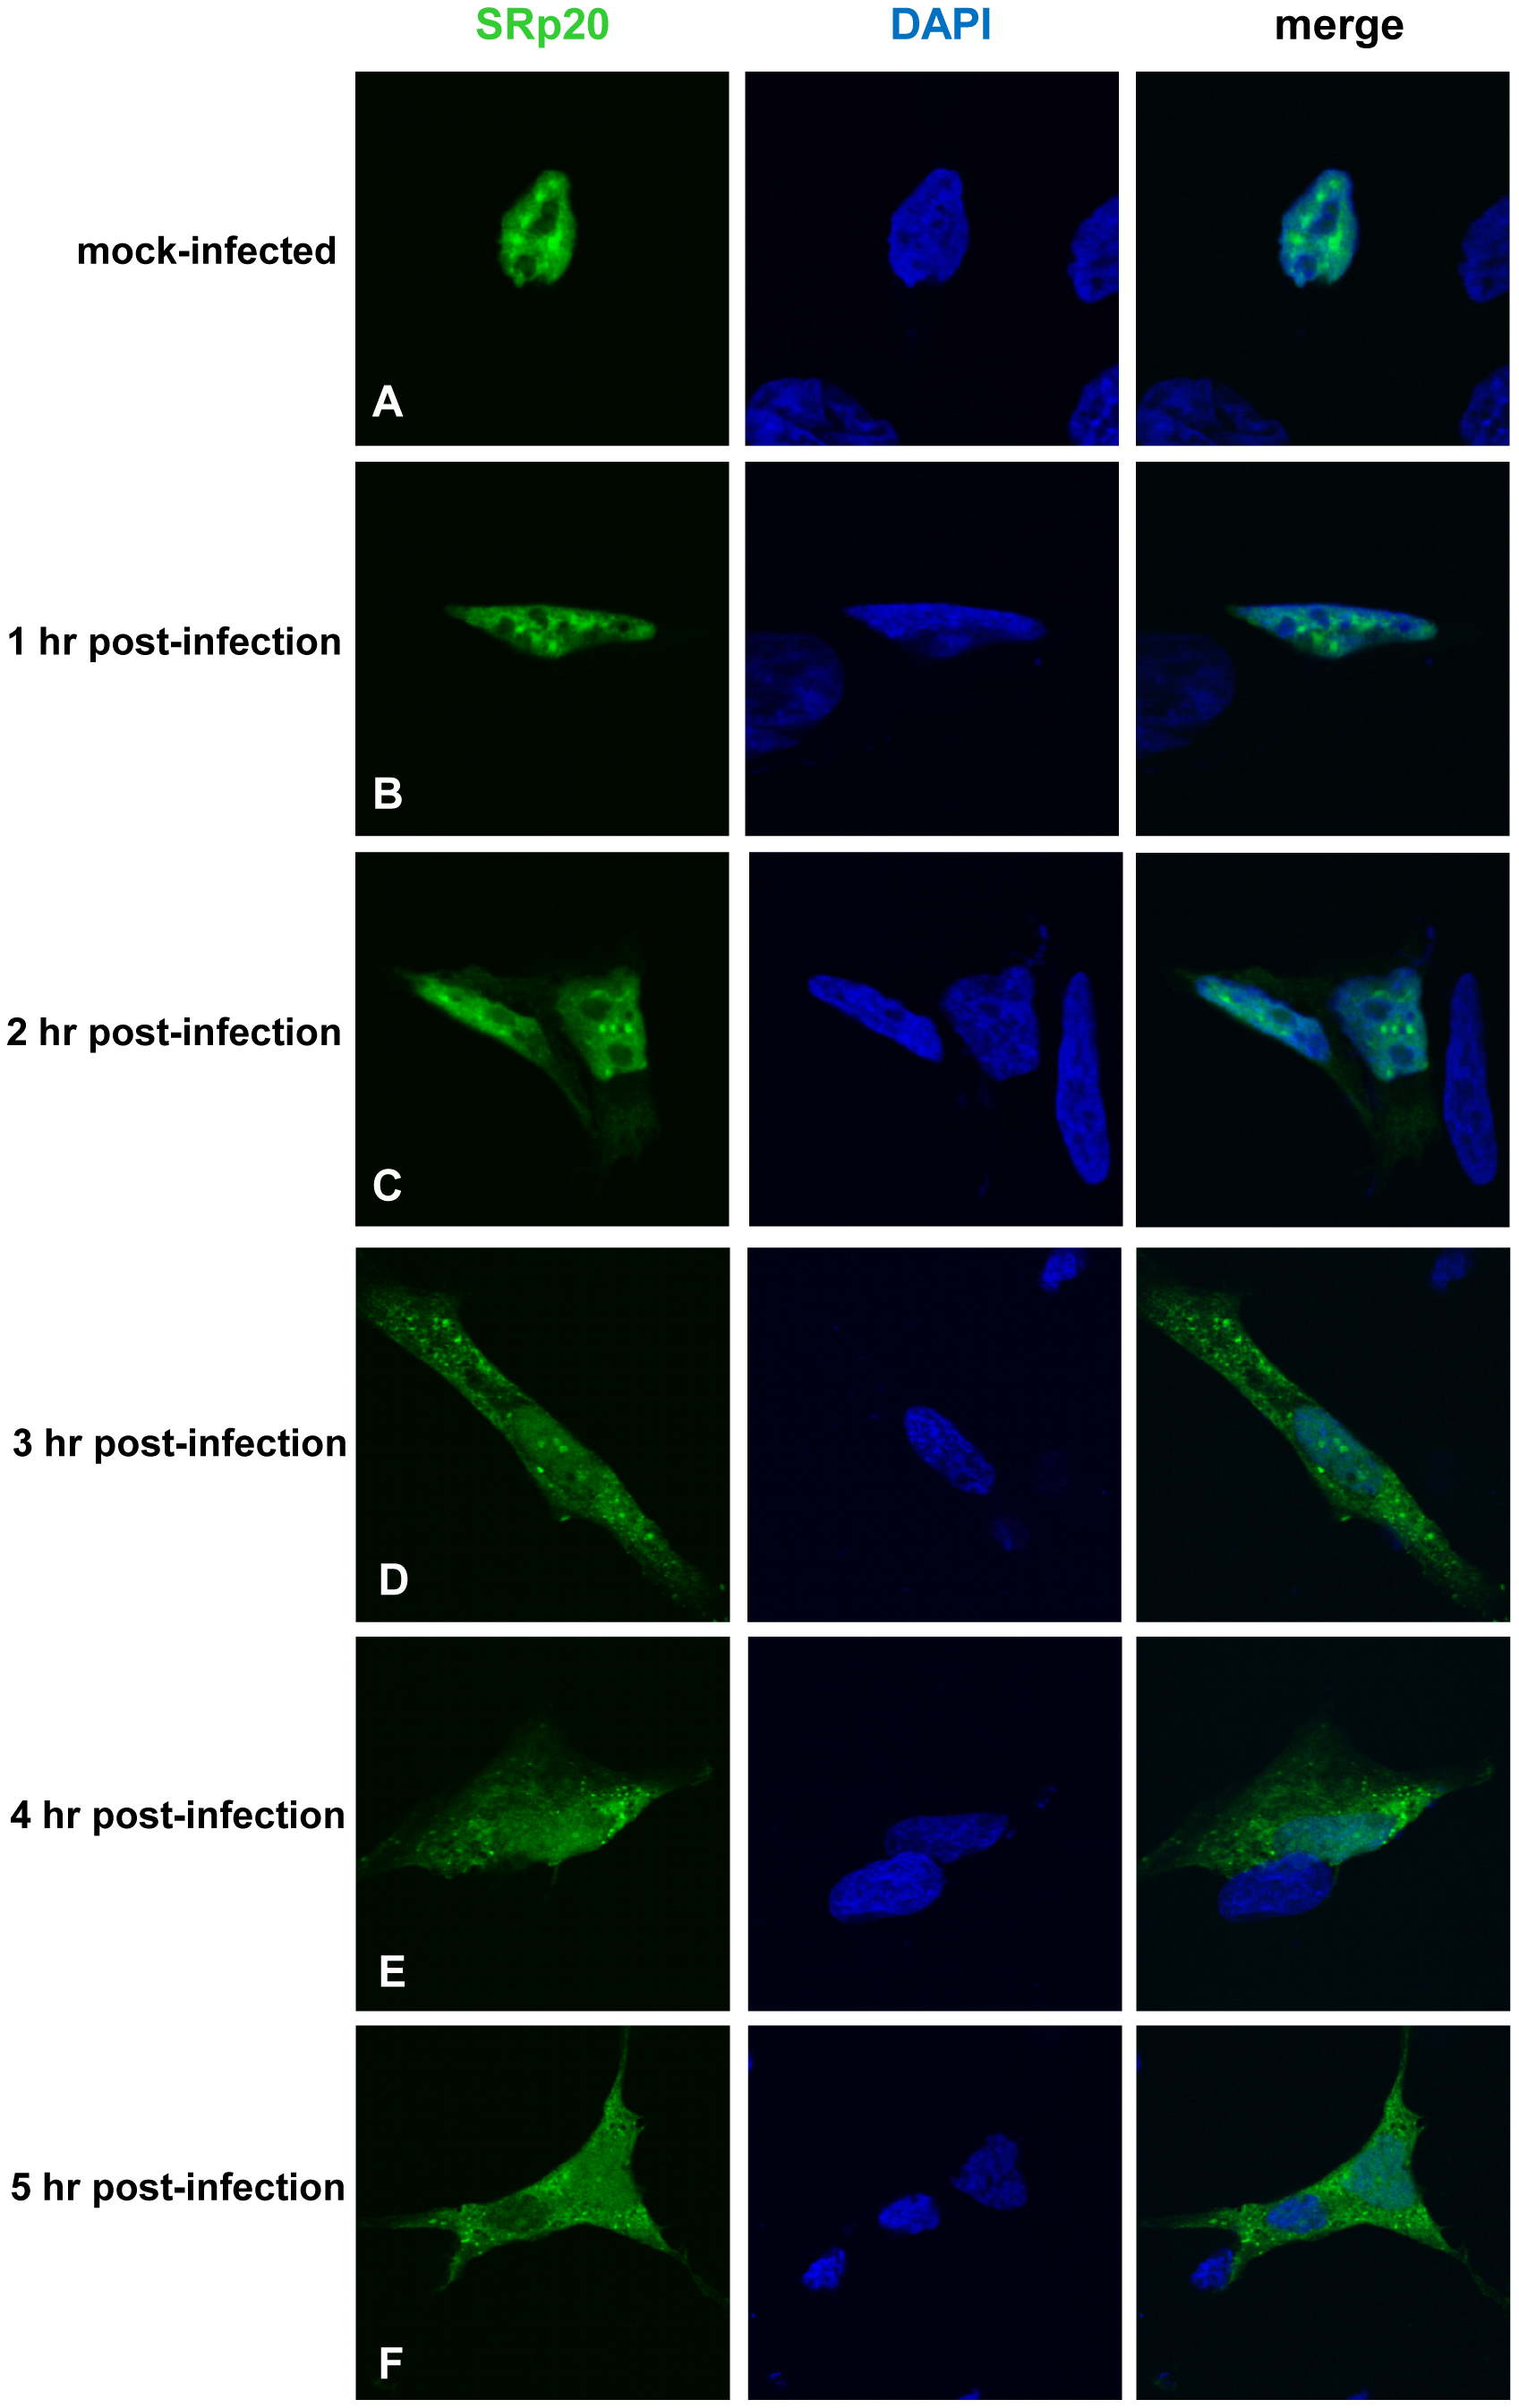 SRp20 re-localization from the nucleus to the cytoplasm of SK-N-SH cells during poliovirus infection.